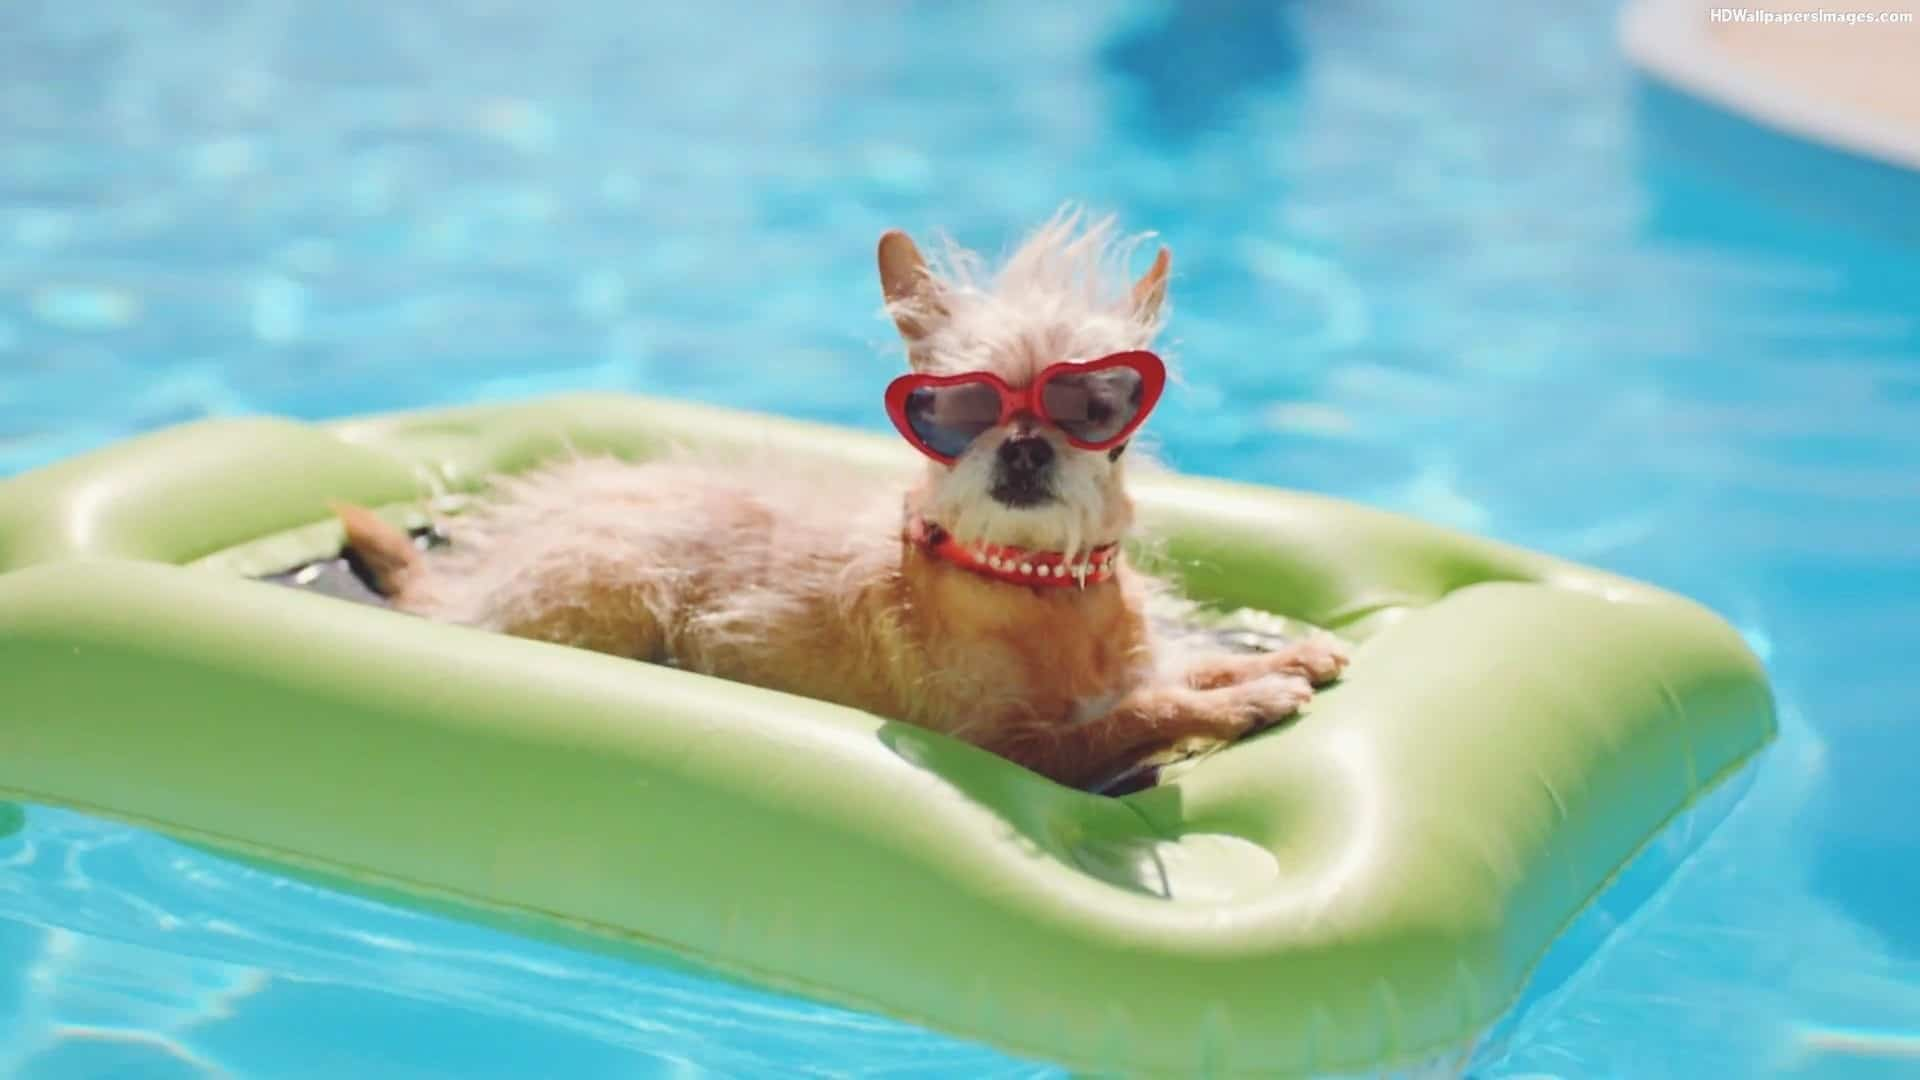 12 Tips To Keep Your Dog Safe In The Pool Awesomejelly Com